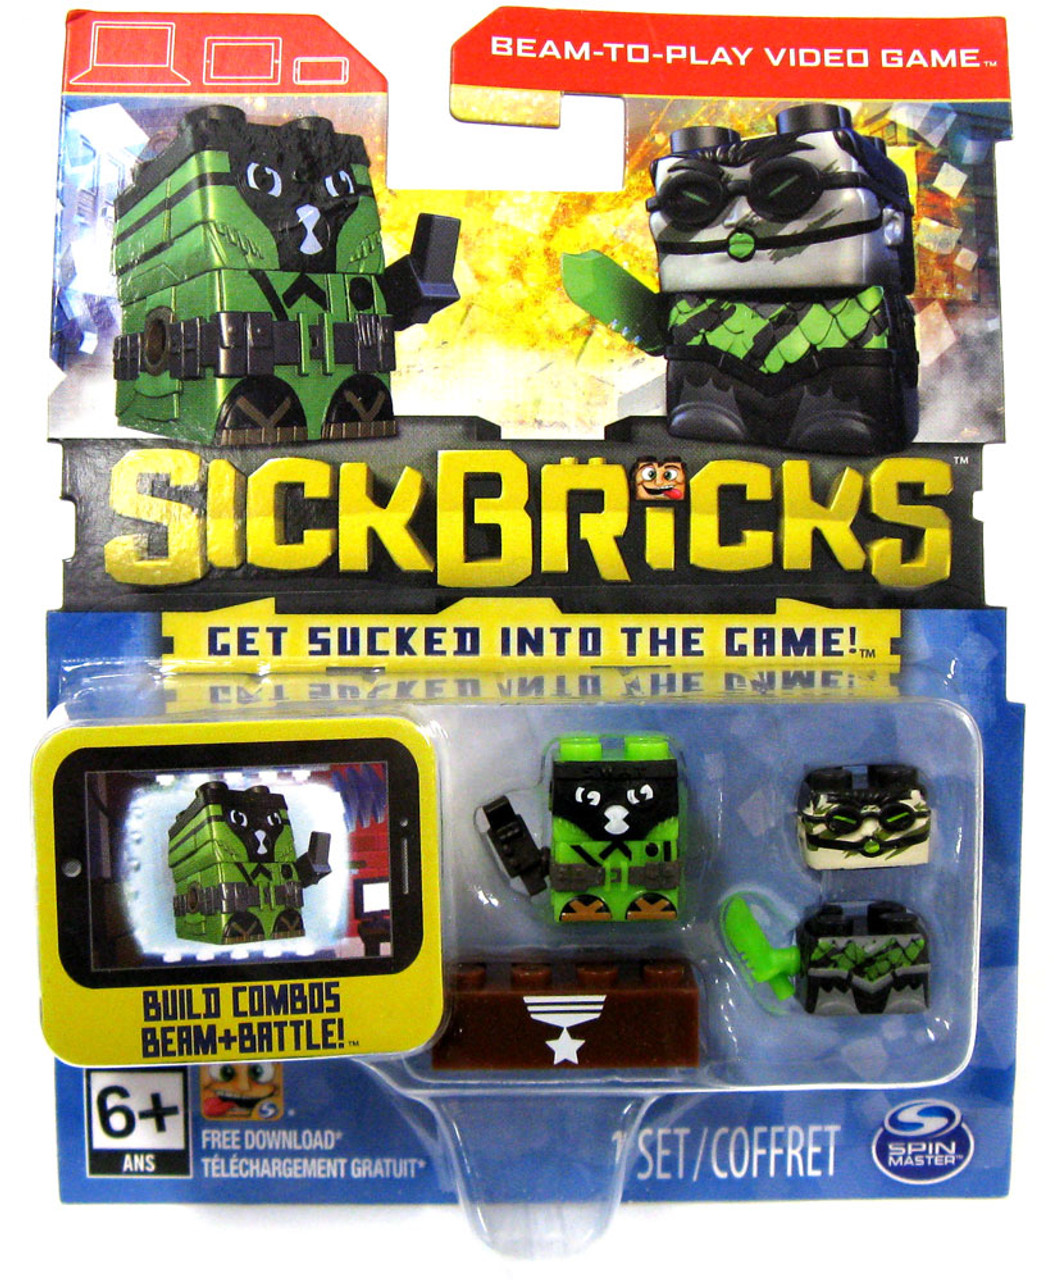 New in Package Sick Bricks Beam-to-Play 2-pack Macho Mike /& Cheese Grater